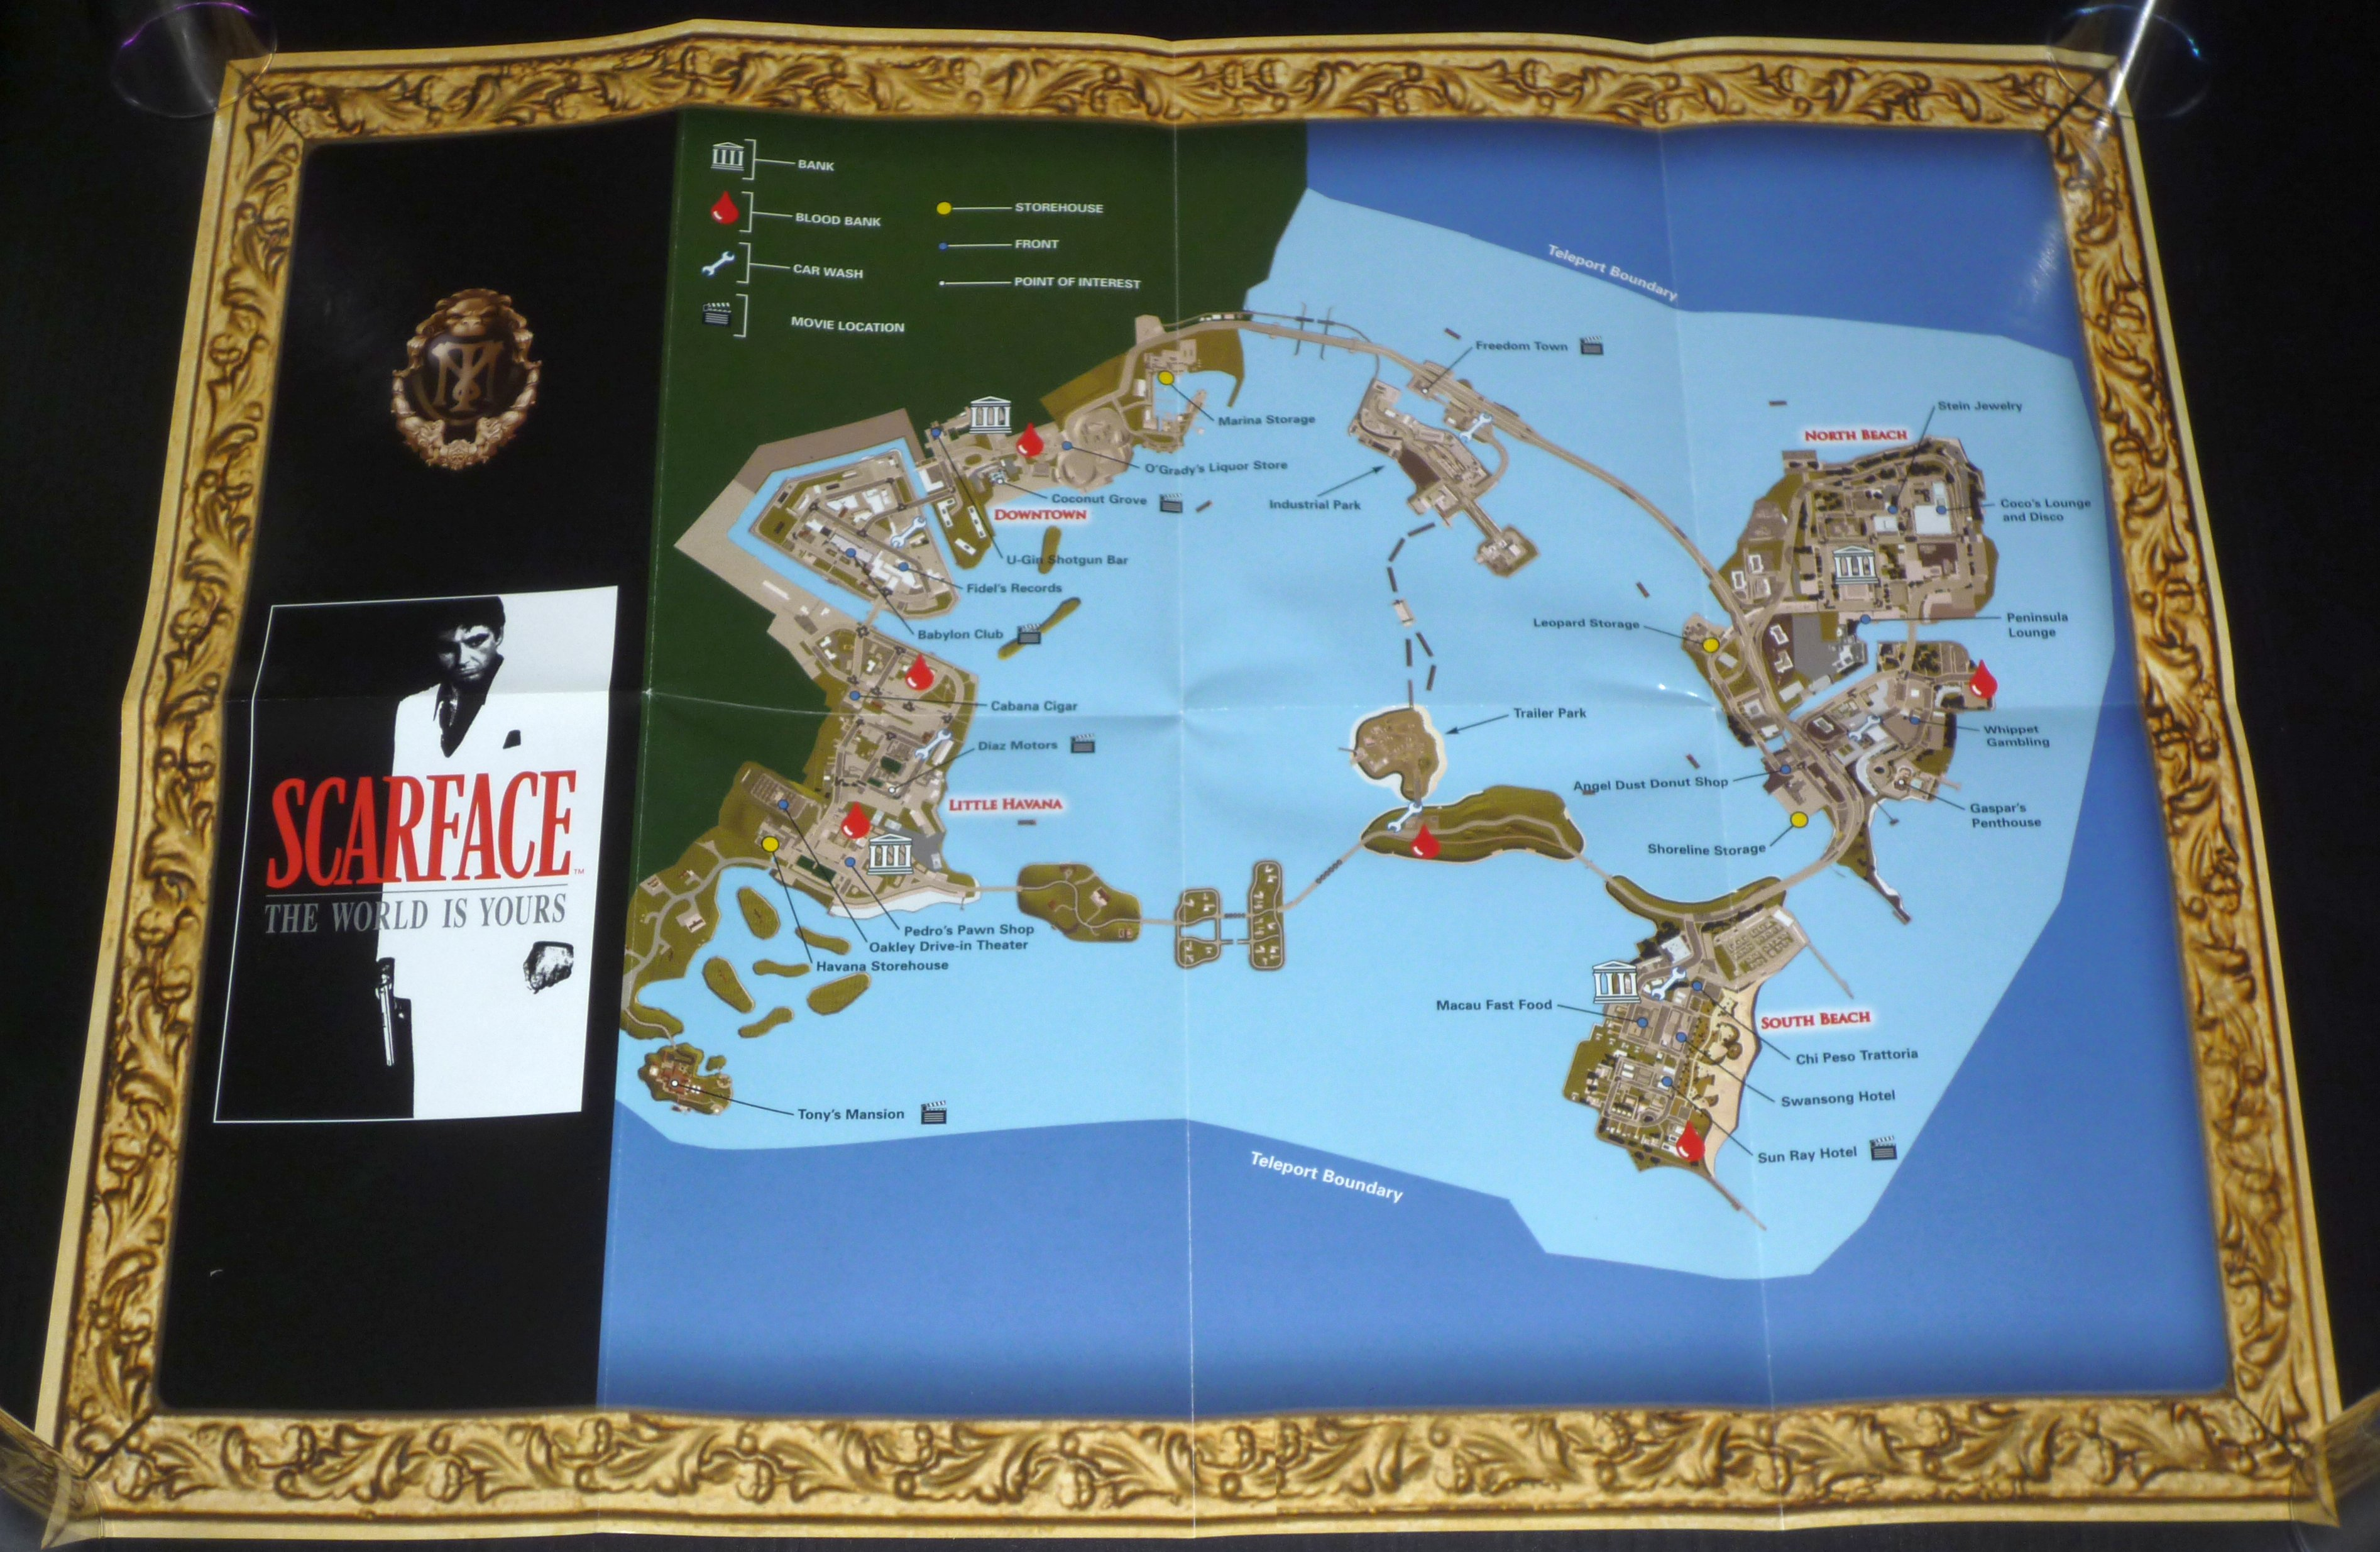 Scarface The World is Yours – Collector's Edition   PS2museum on red river world map, guy world map, saigon world map, jurassic park world map, morocco world map, conan the barbarian world map, juarez world map, future world map, casino world map, detailed world map, tobruk world map, nivea world map, lord of the rings world map, wolf world map, city lights world map, algiers world map, simpsons world map,